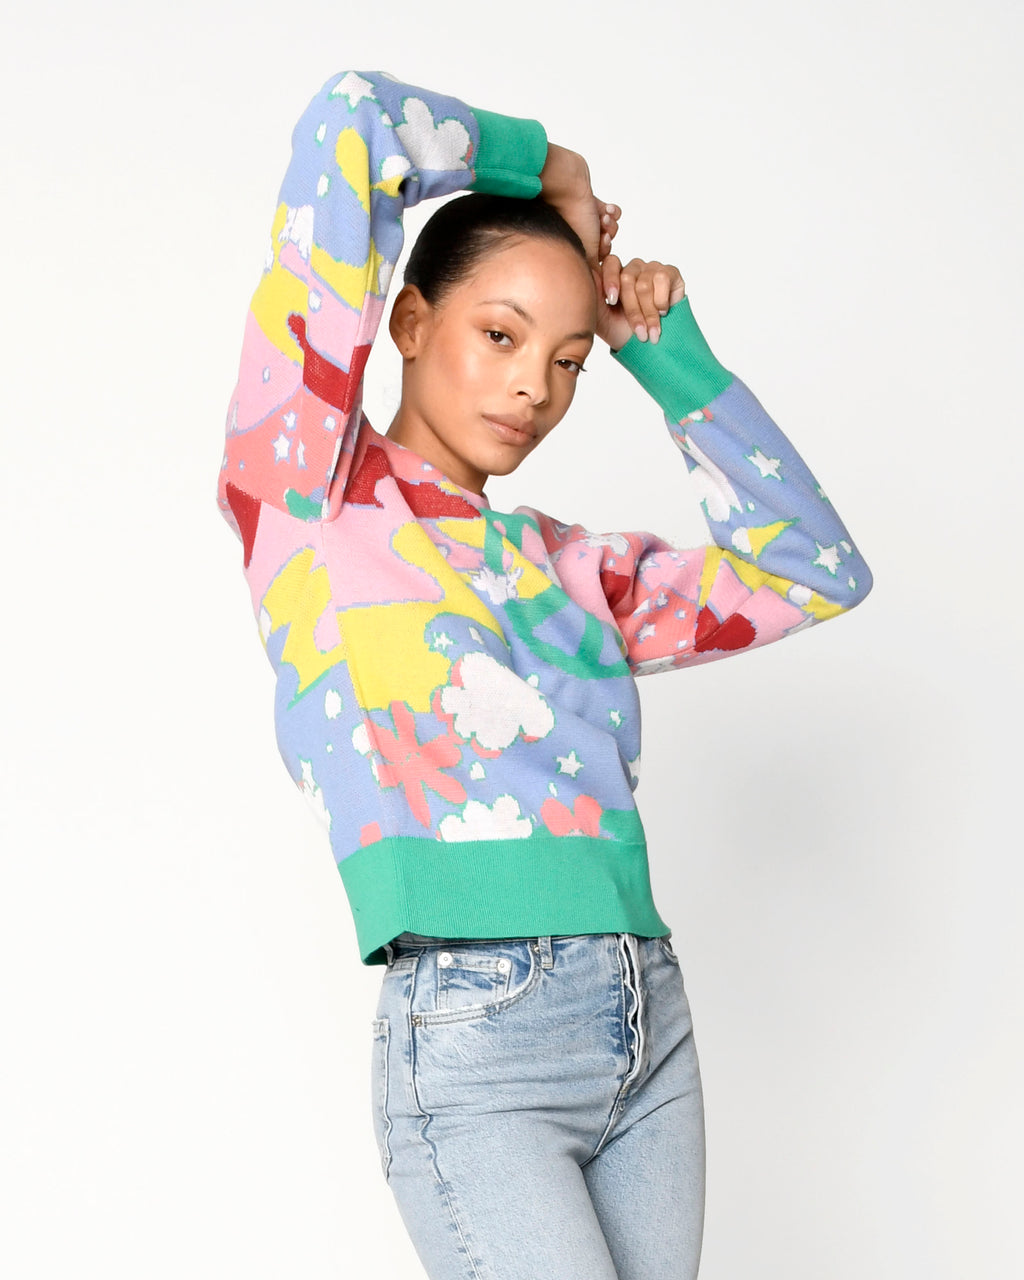 CT18803 - UNIVERSAL LOVE CREW NECK SWEATER - tops - knitwear - Our candy colored universal love sweater is designed in a classic crew neck silhouette. Featuring peace sign, star and cloud motifs Add 1 line break Stylist tip: Style with white denim.